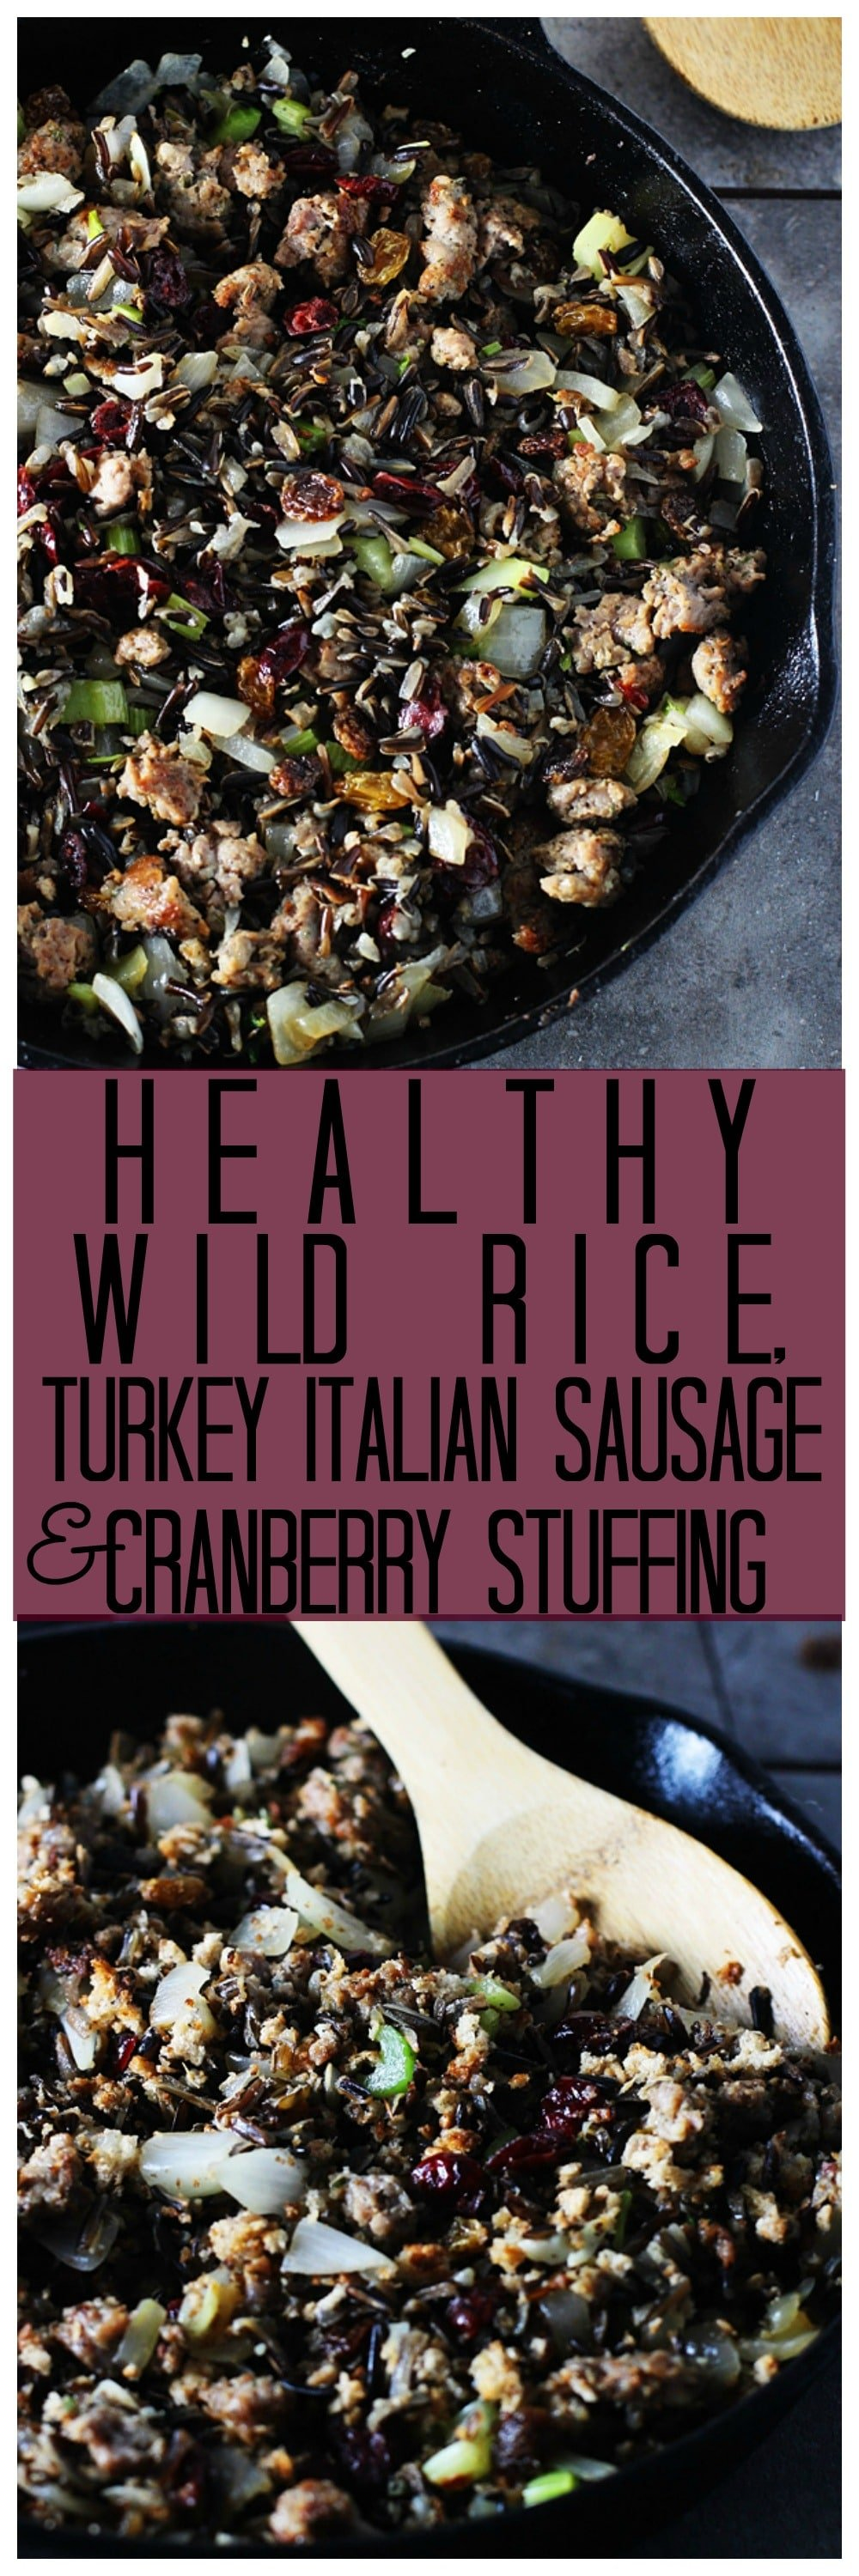 Healthy Wild Rice Stuffing with Turkey Italian Sausage, Cranberries and Pecans